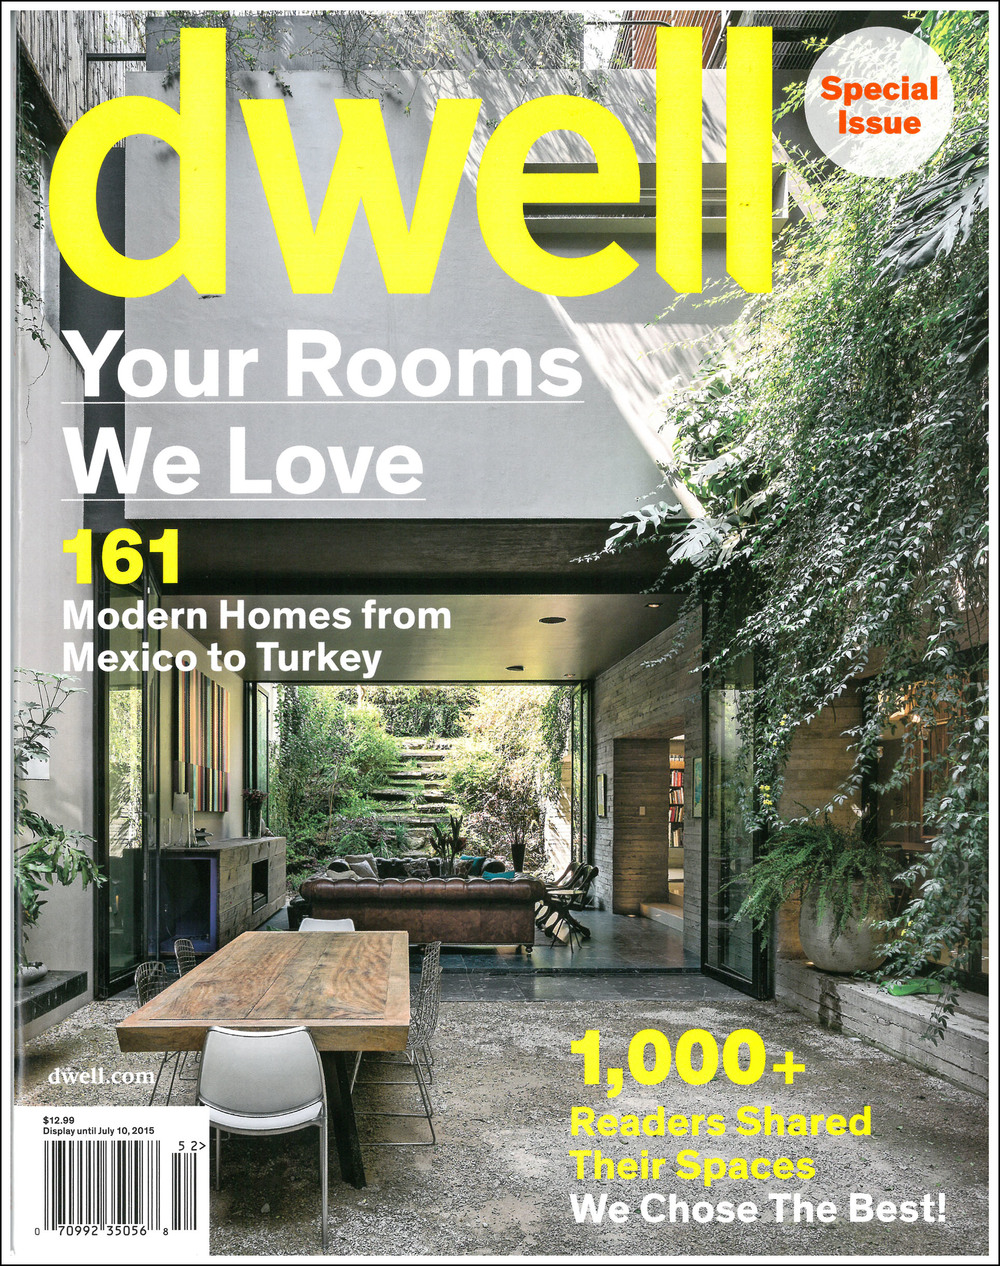 Dwell_Your-Rooms-We-Love